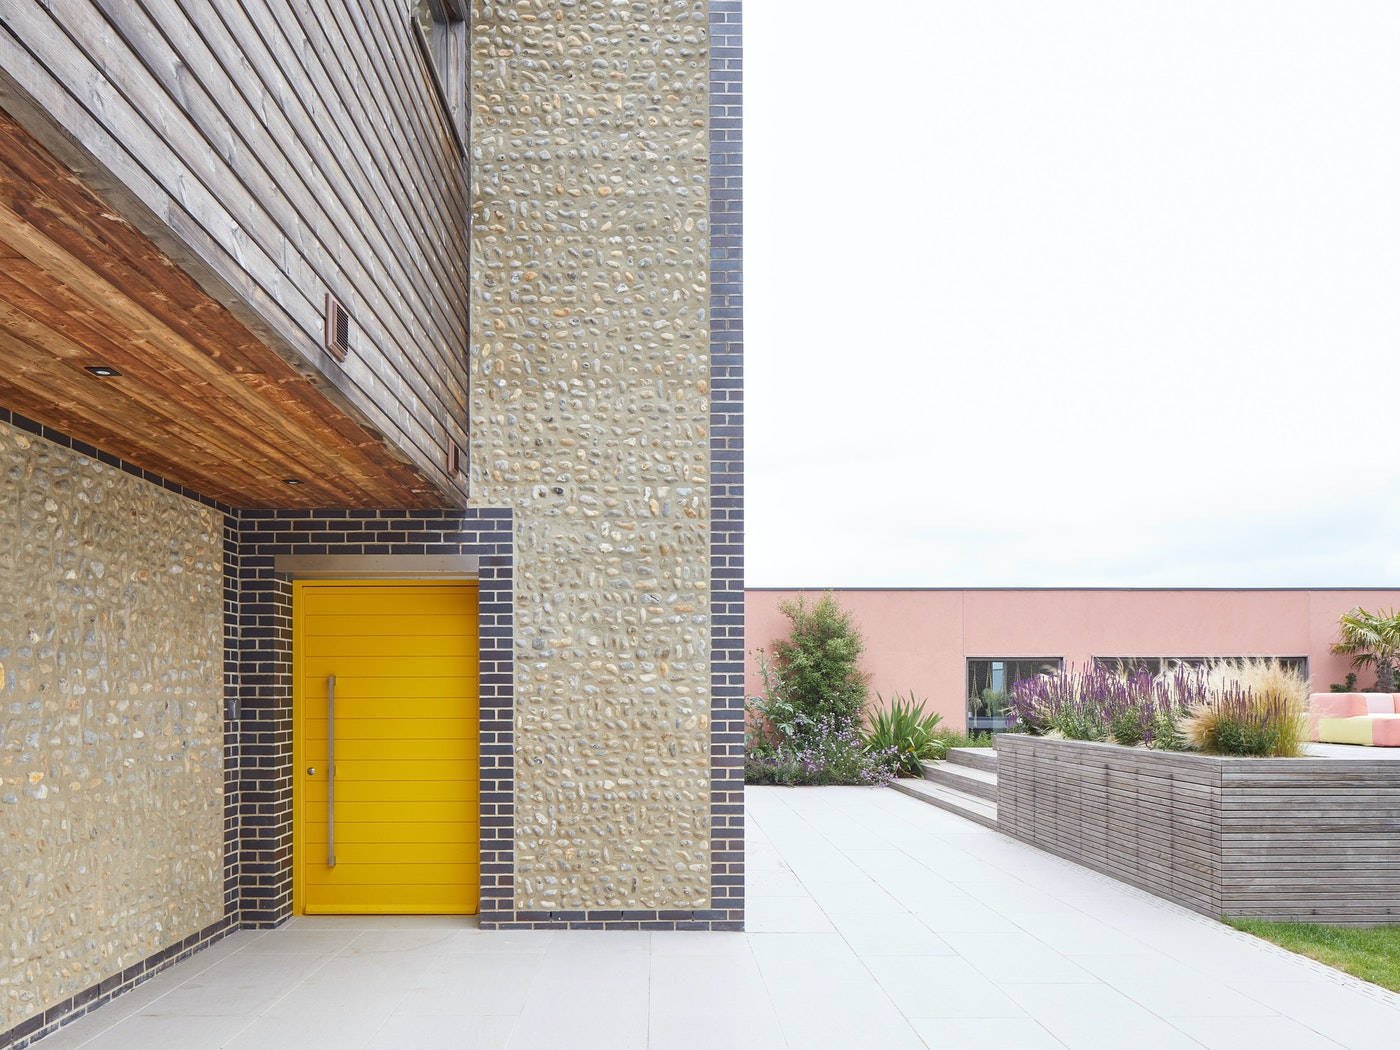 This yellow painted door stands out against the stone facade